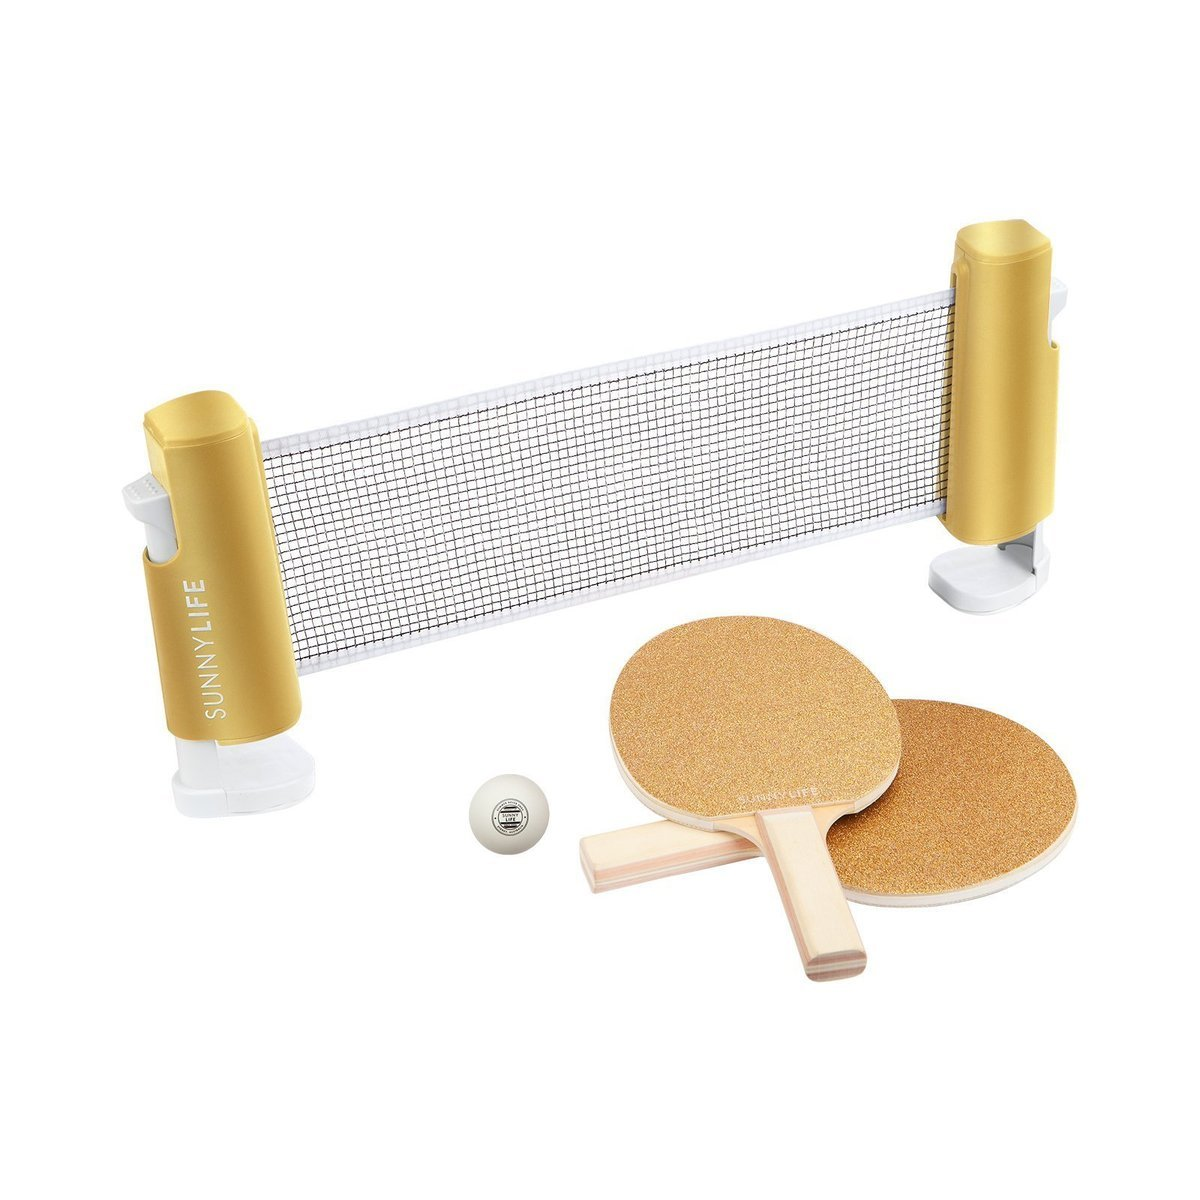 Sunnylife Table Top Tennis Game Ping Pong Set For Kids And Adults Gold Glitter Ping Pong Sunnylife Pong